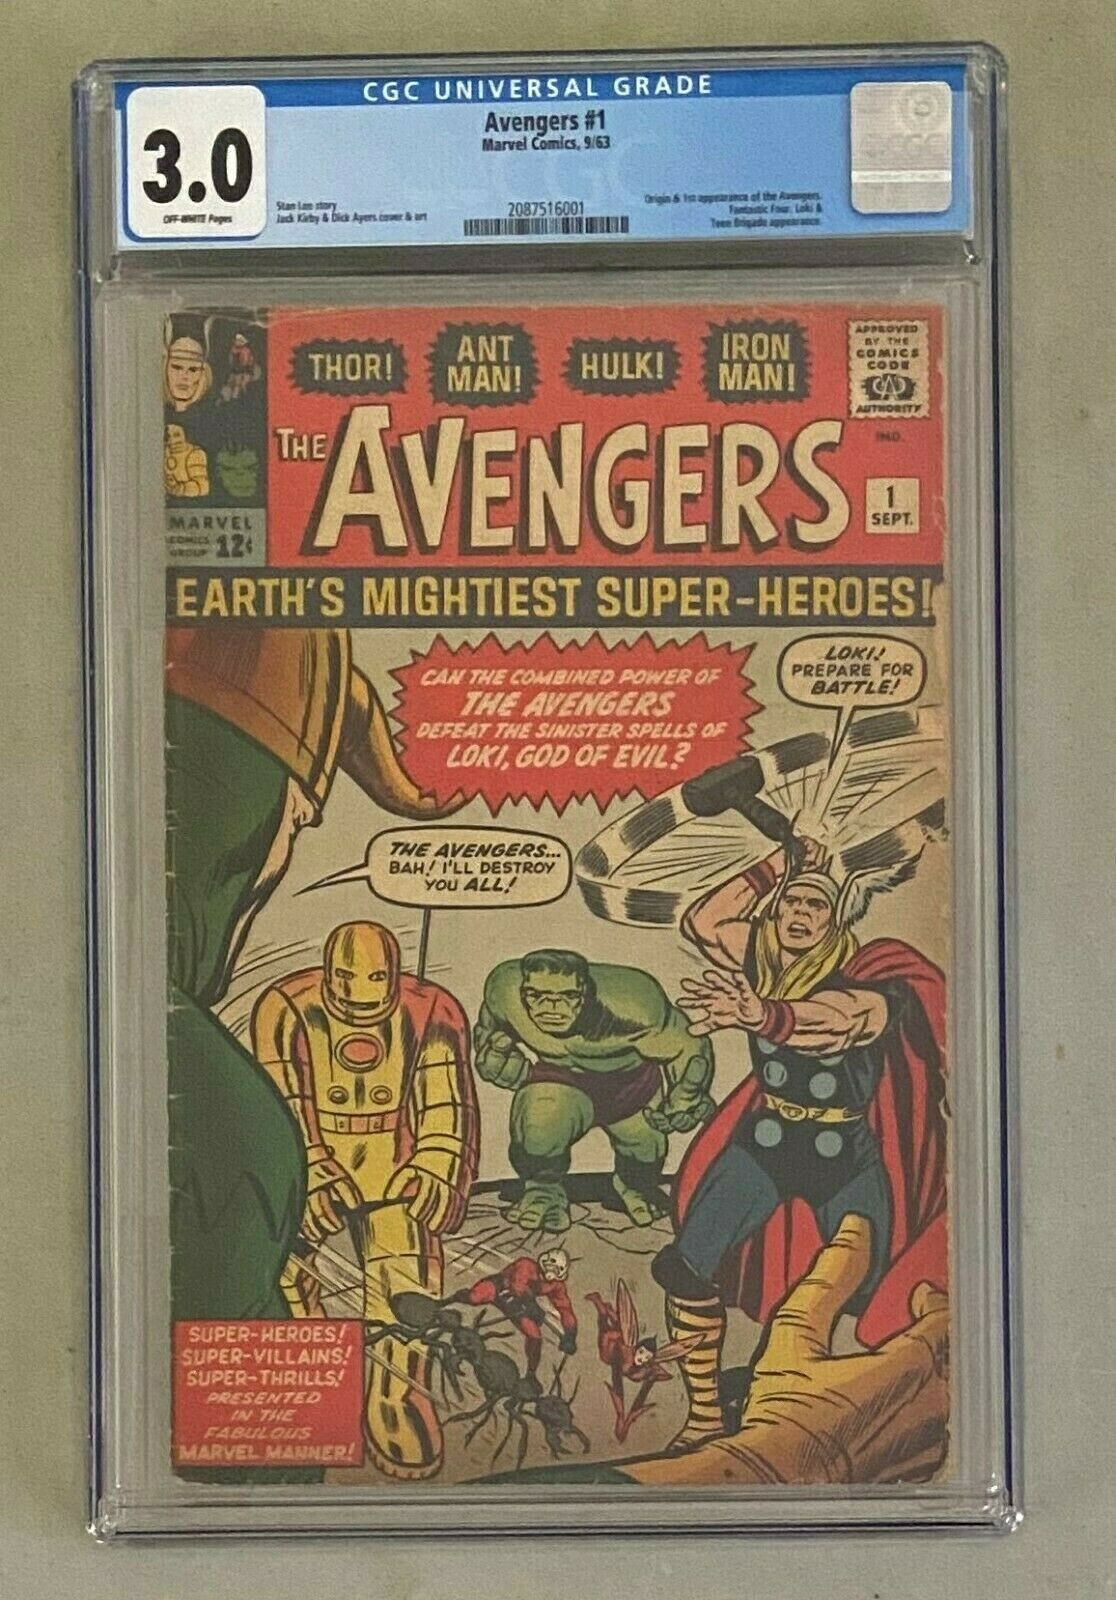 AVENGERS 1 Marvel Comics 1963 CGC 30 Origin  1st Appearance w Fantastic Four